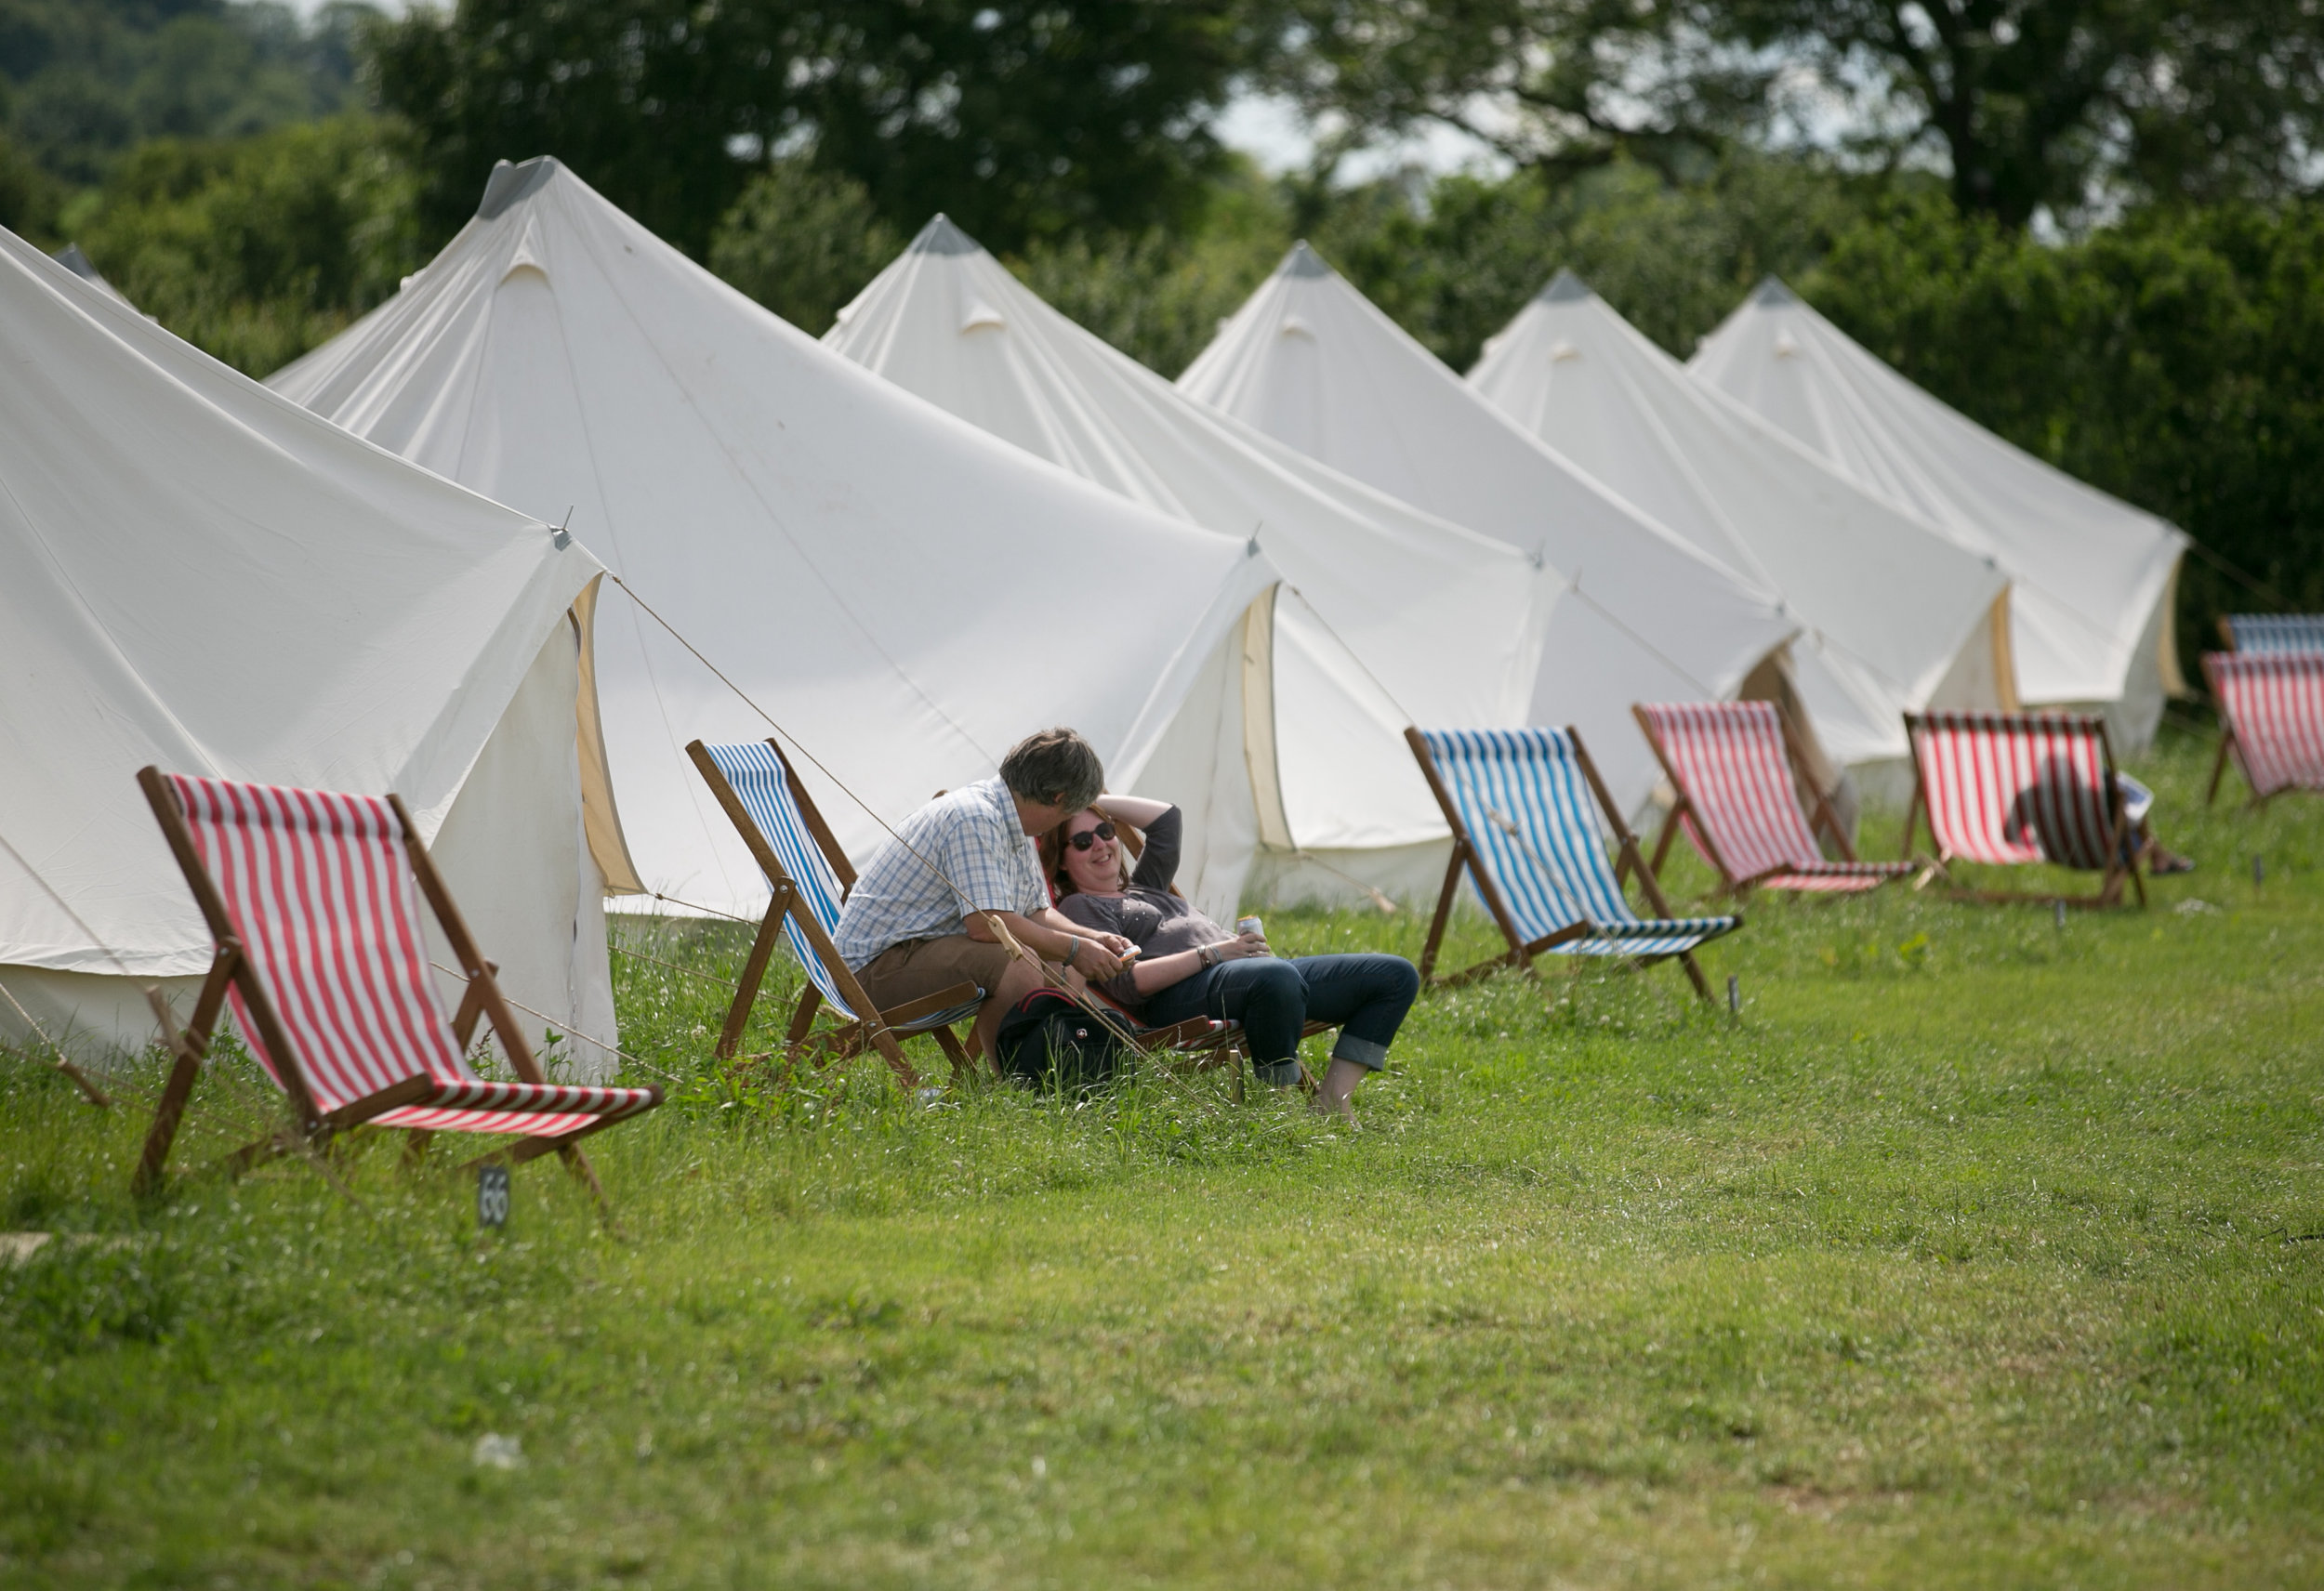 GORGEOUS BELL TENTS TO HIRE - HIRE SOME OF OUR AMAZING BELL TENTS FOR YOUR WEDDING, BRAND EVENT, FESTIVAL OR A GLAMPING WEEKEND!